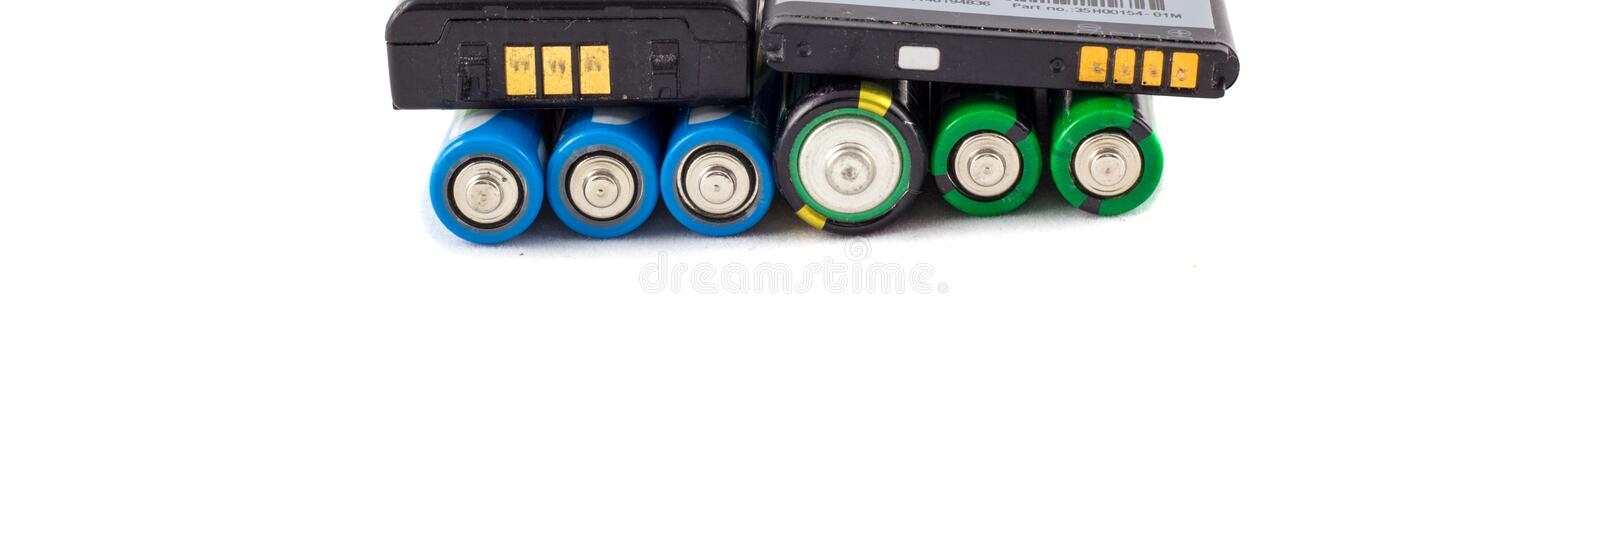 Accumulators and batteries. Isolated on white background stock image